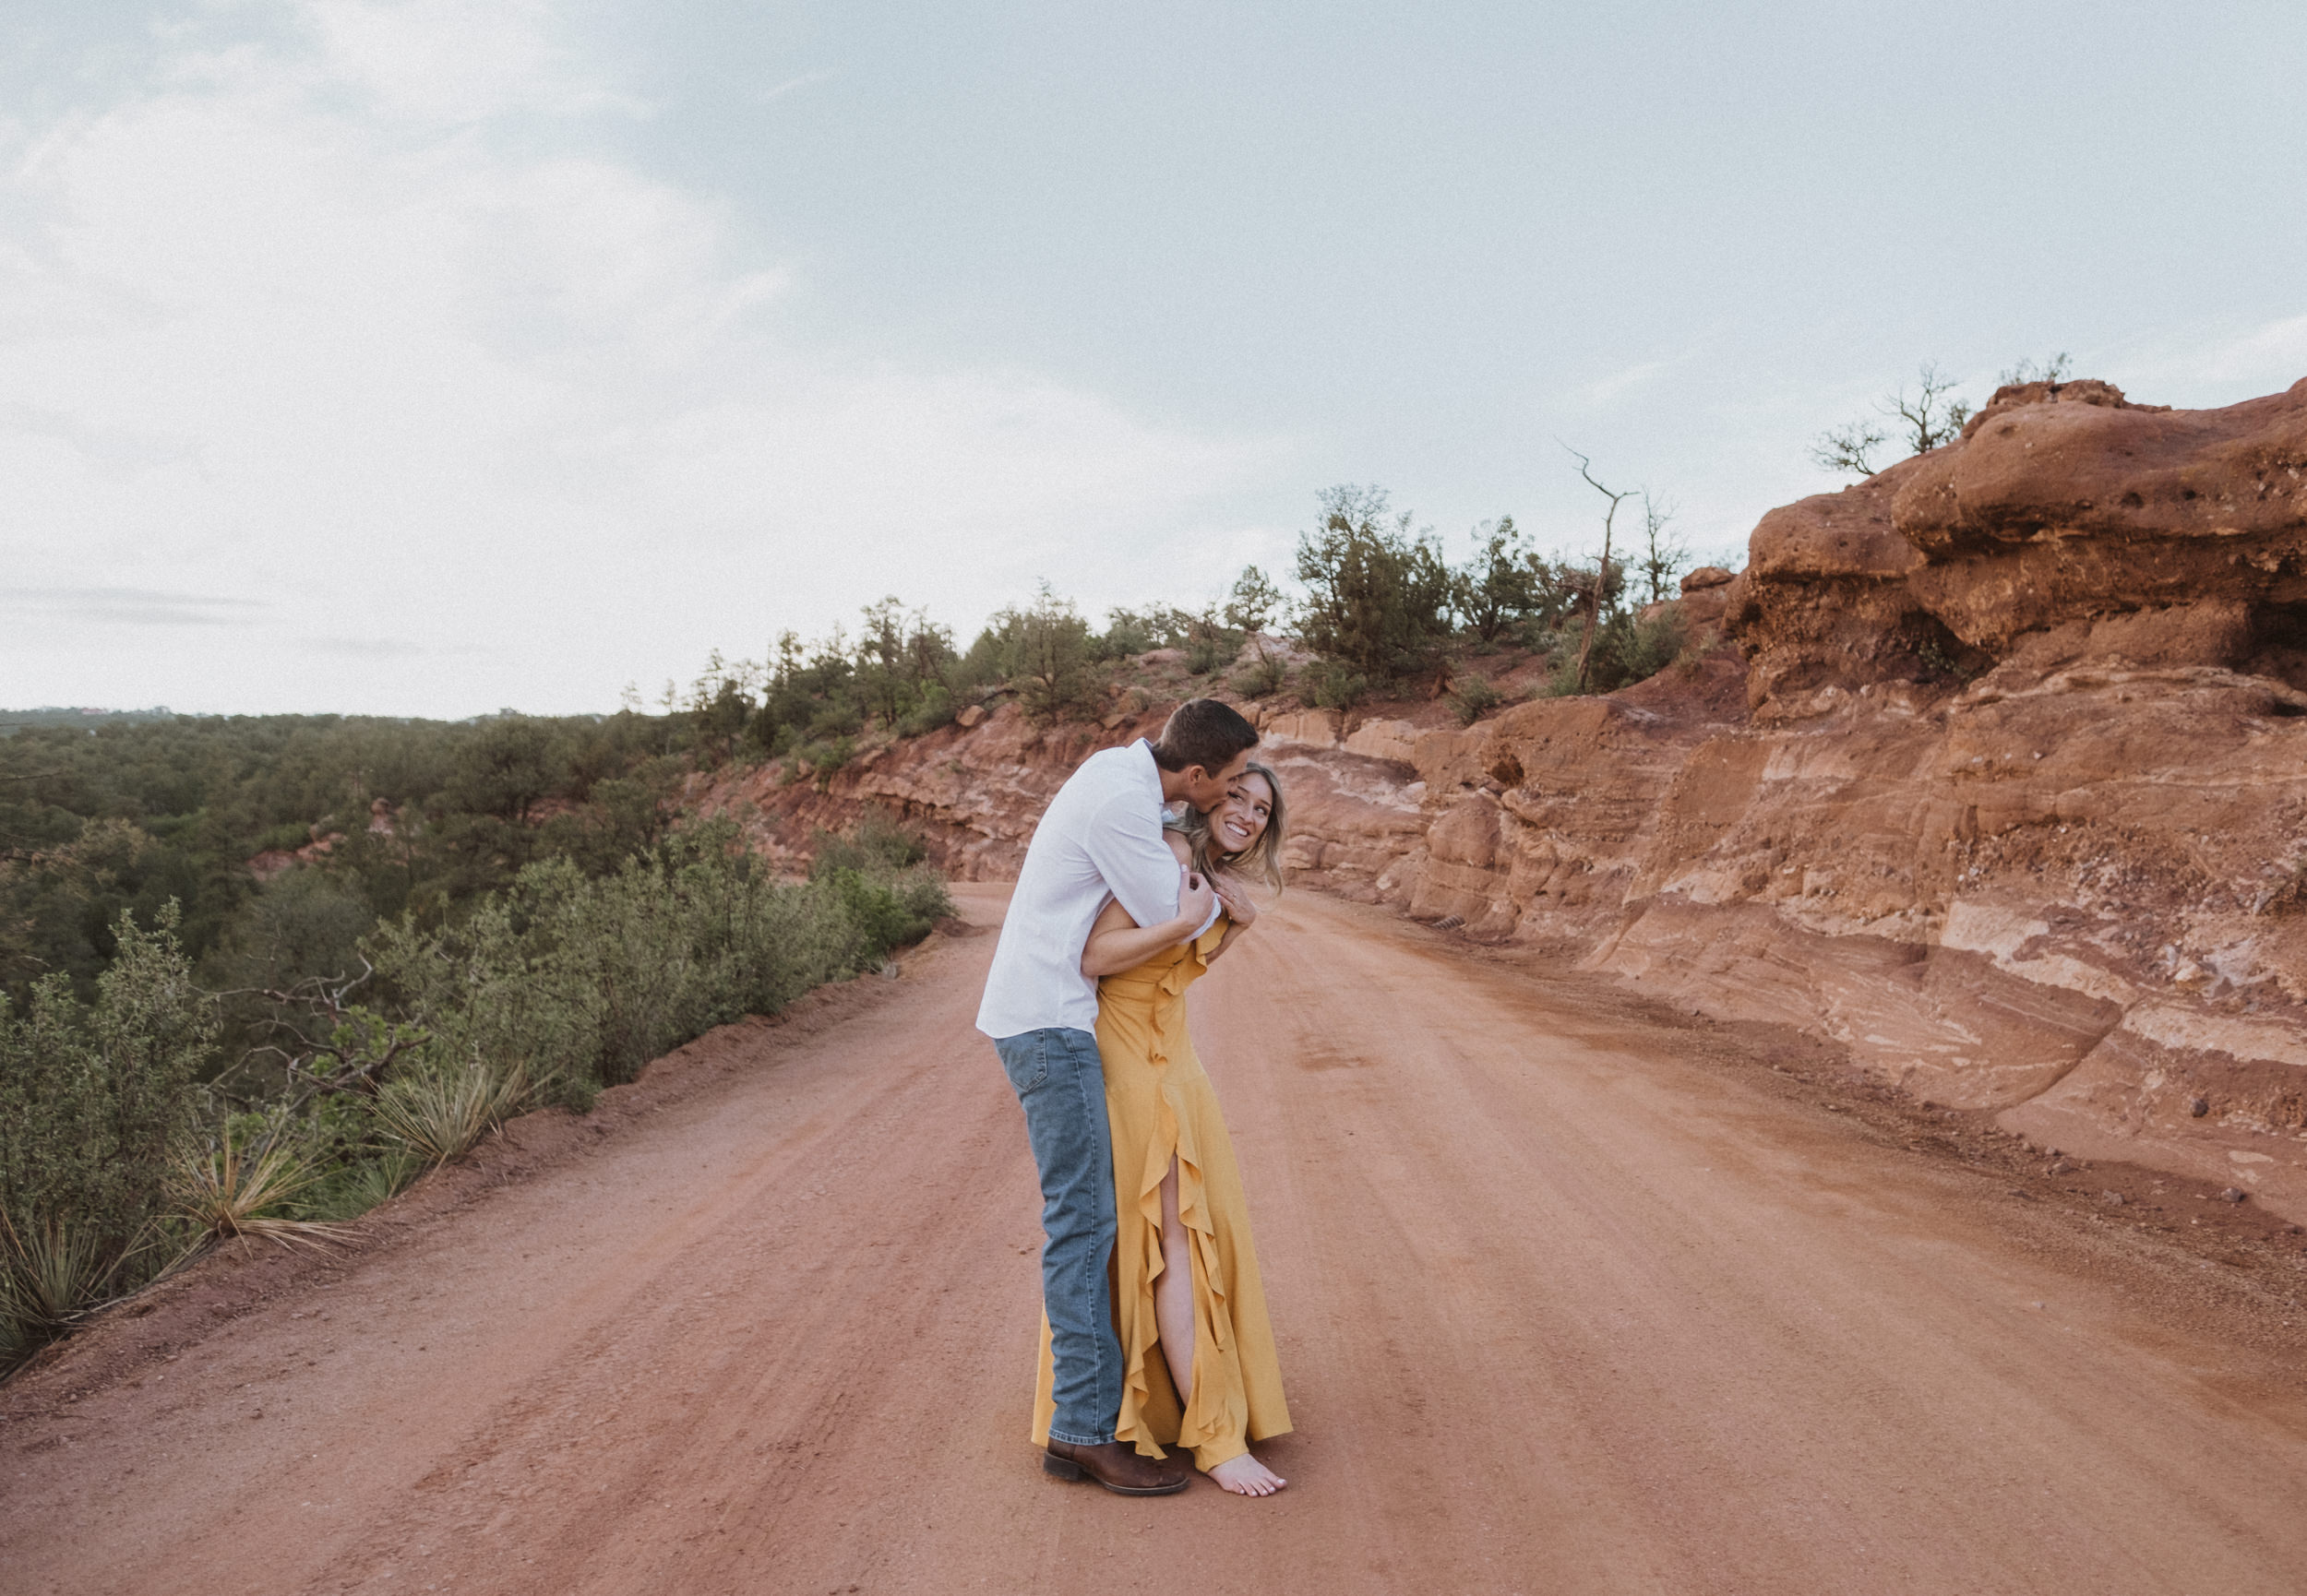 Engagement photos at Garden of the Gods. Colorado Springs wedding photographer. Garden of the Gods engagement session.